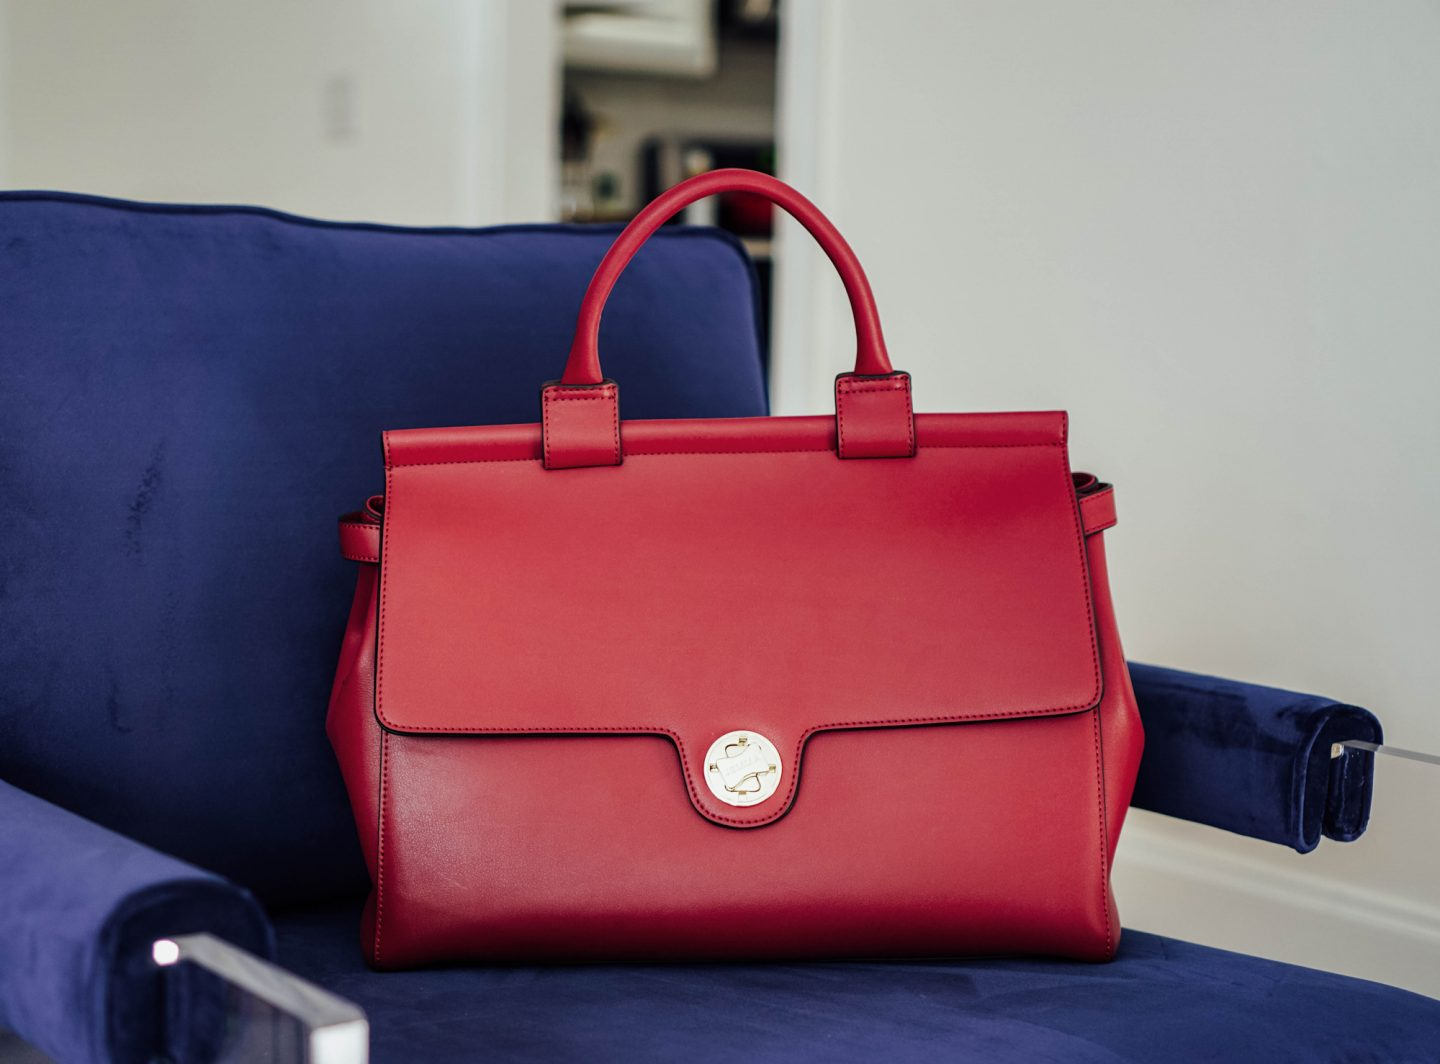 If you're a working gal, or someone who wants roomy handbag to fit all of the necessities, and then some, I have found the perfect back for you from Jemma Girls NYC! The best part is, we're giving one away on TheDandyLiar.com.